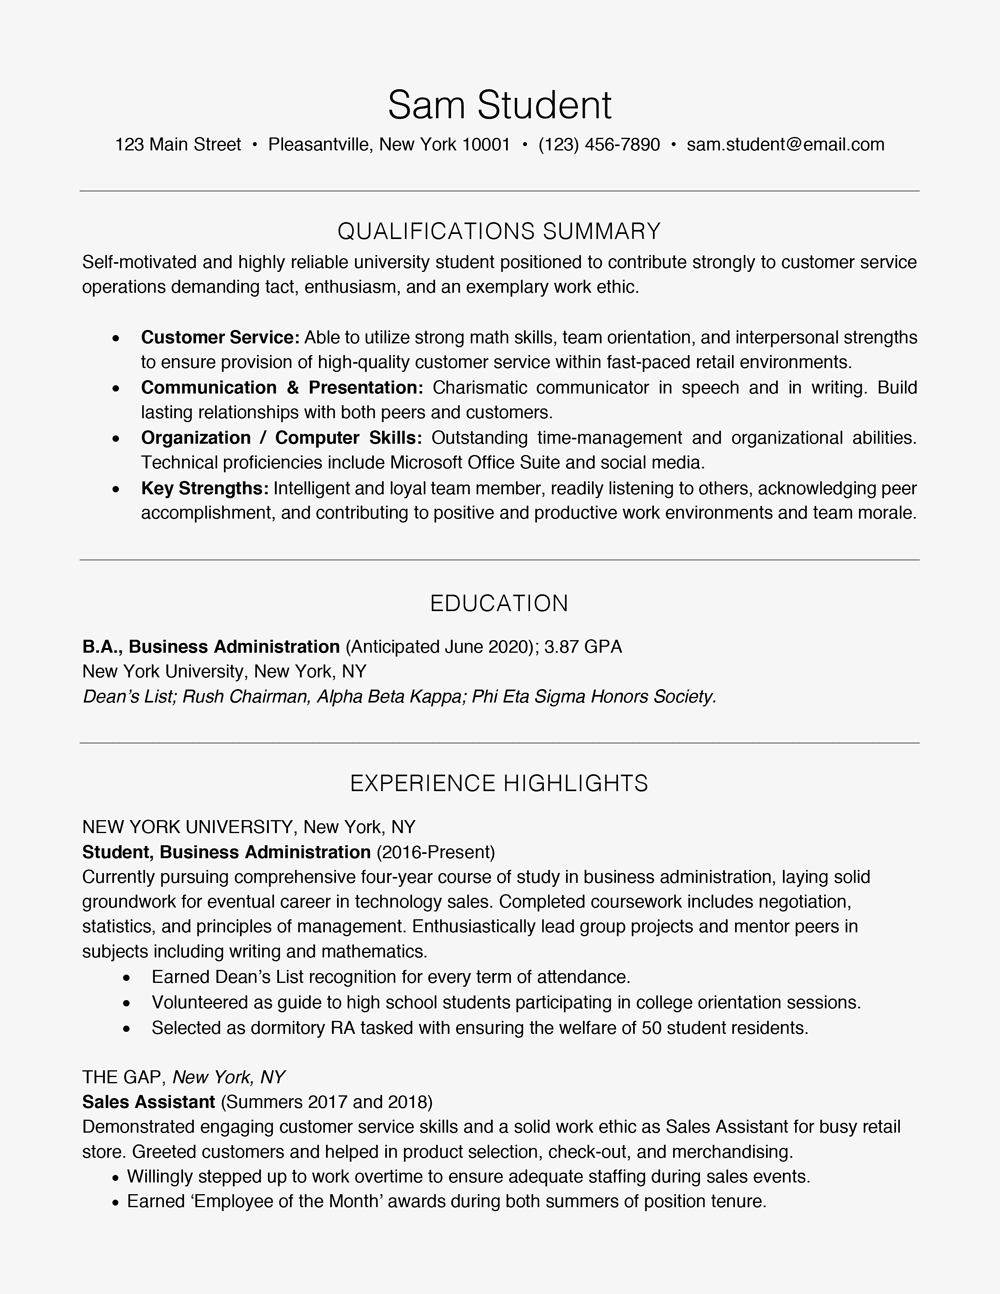 resume skills for high school students - Resume Highlights